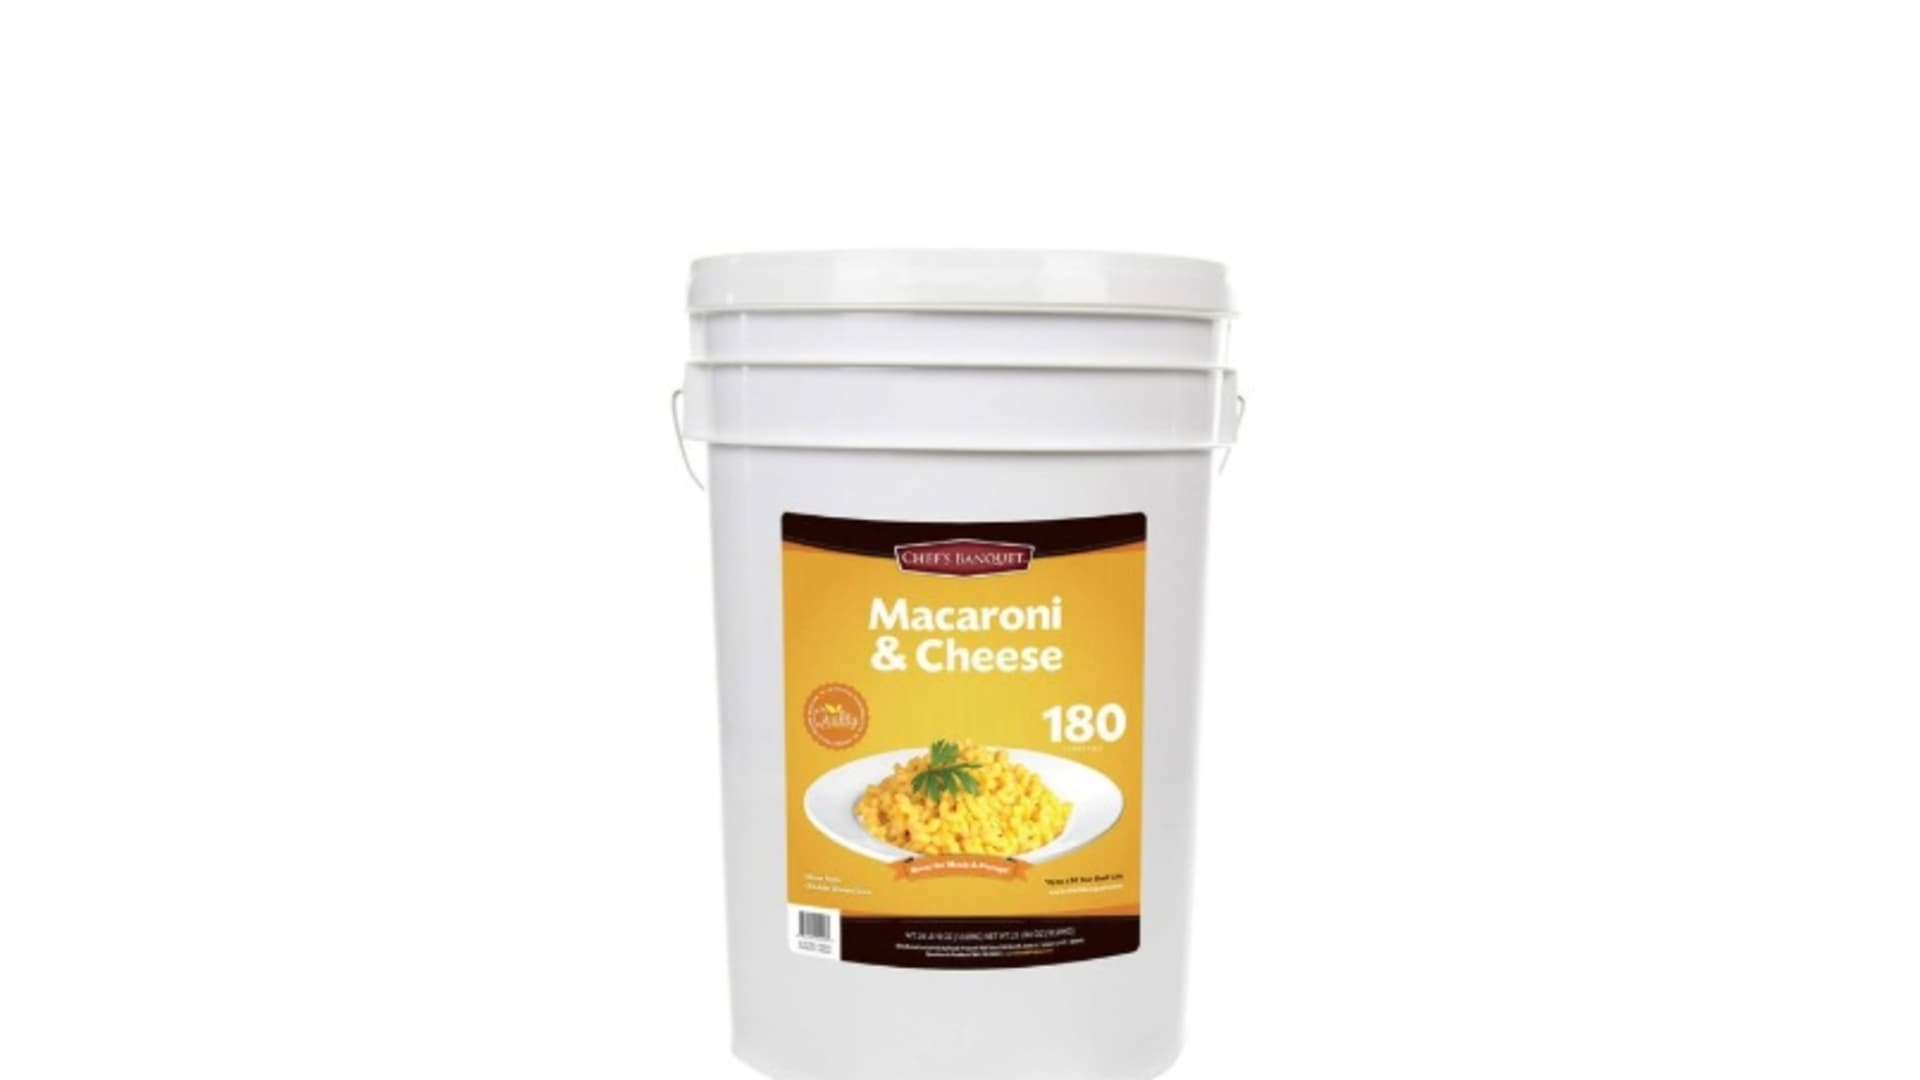 The Chef's Banquet Macaroni & Cheese has a 25-year shelf life.